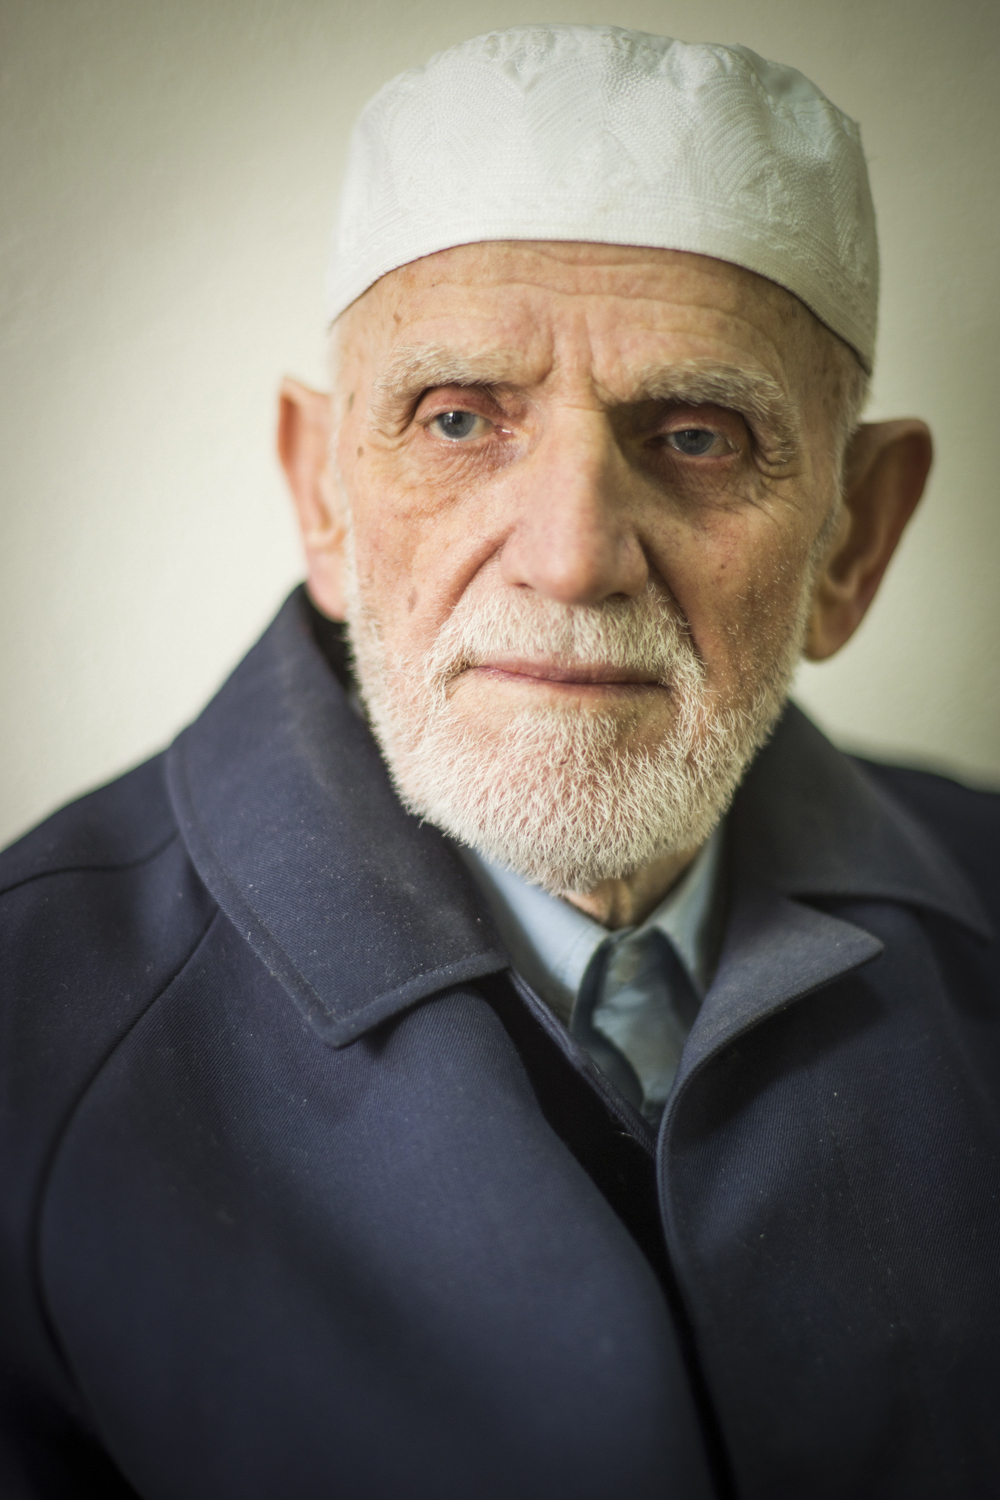 83 year old Magjun Kuqi sitting in a tea house of one of Pristina's many Mosques. Shot with the A7ii and 85mm Ai-s at 1.4